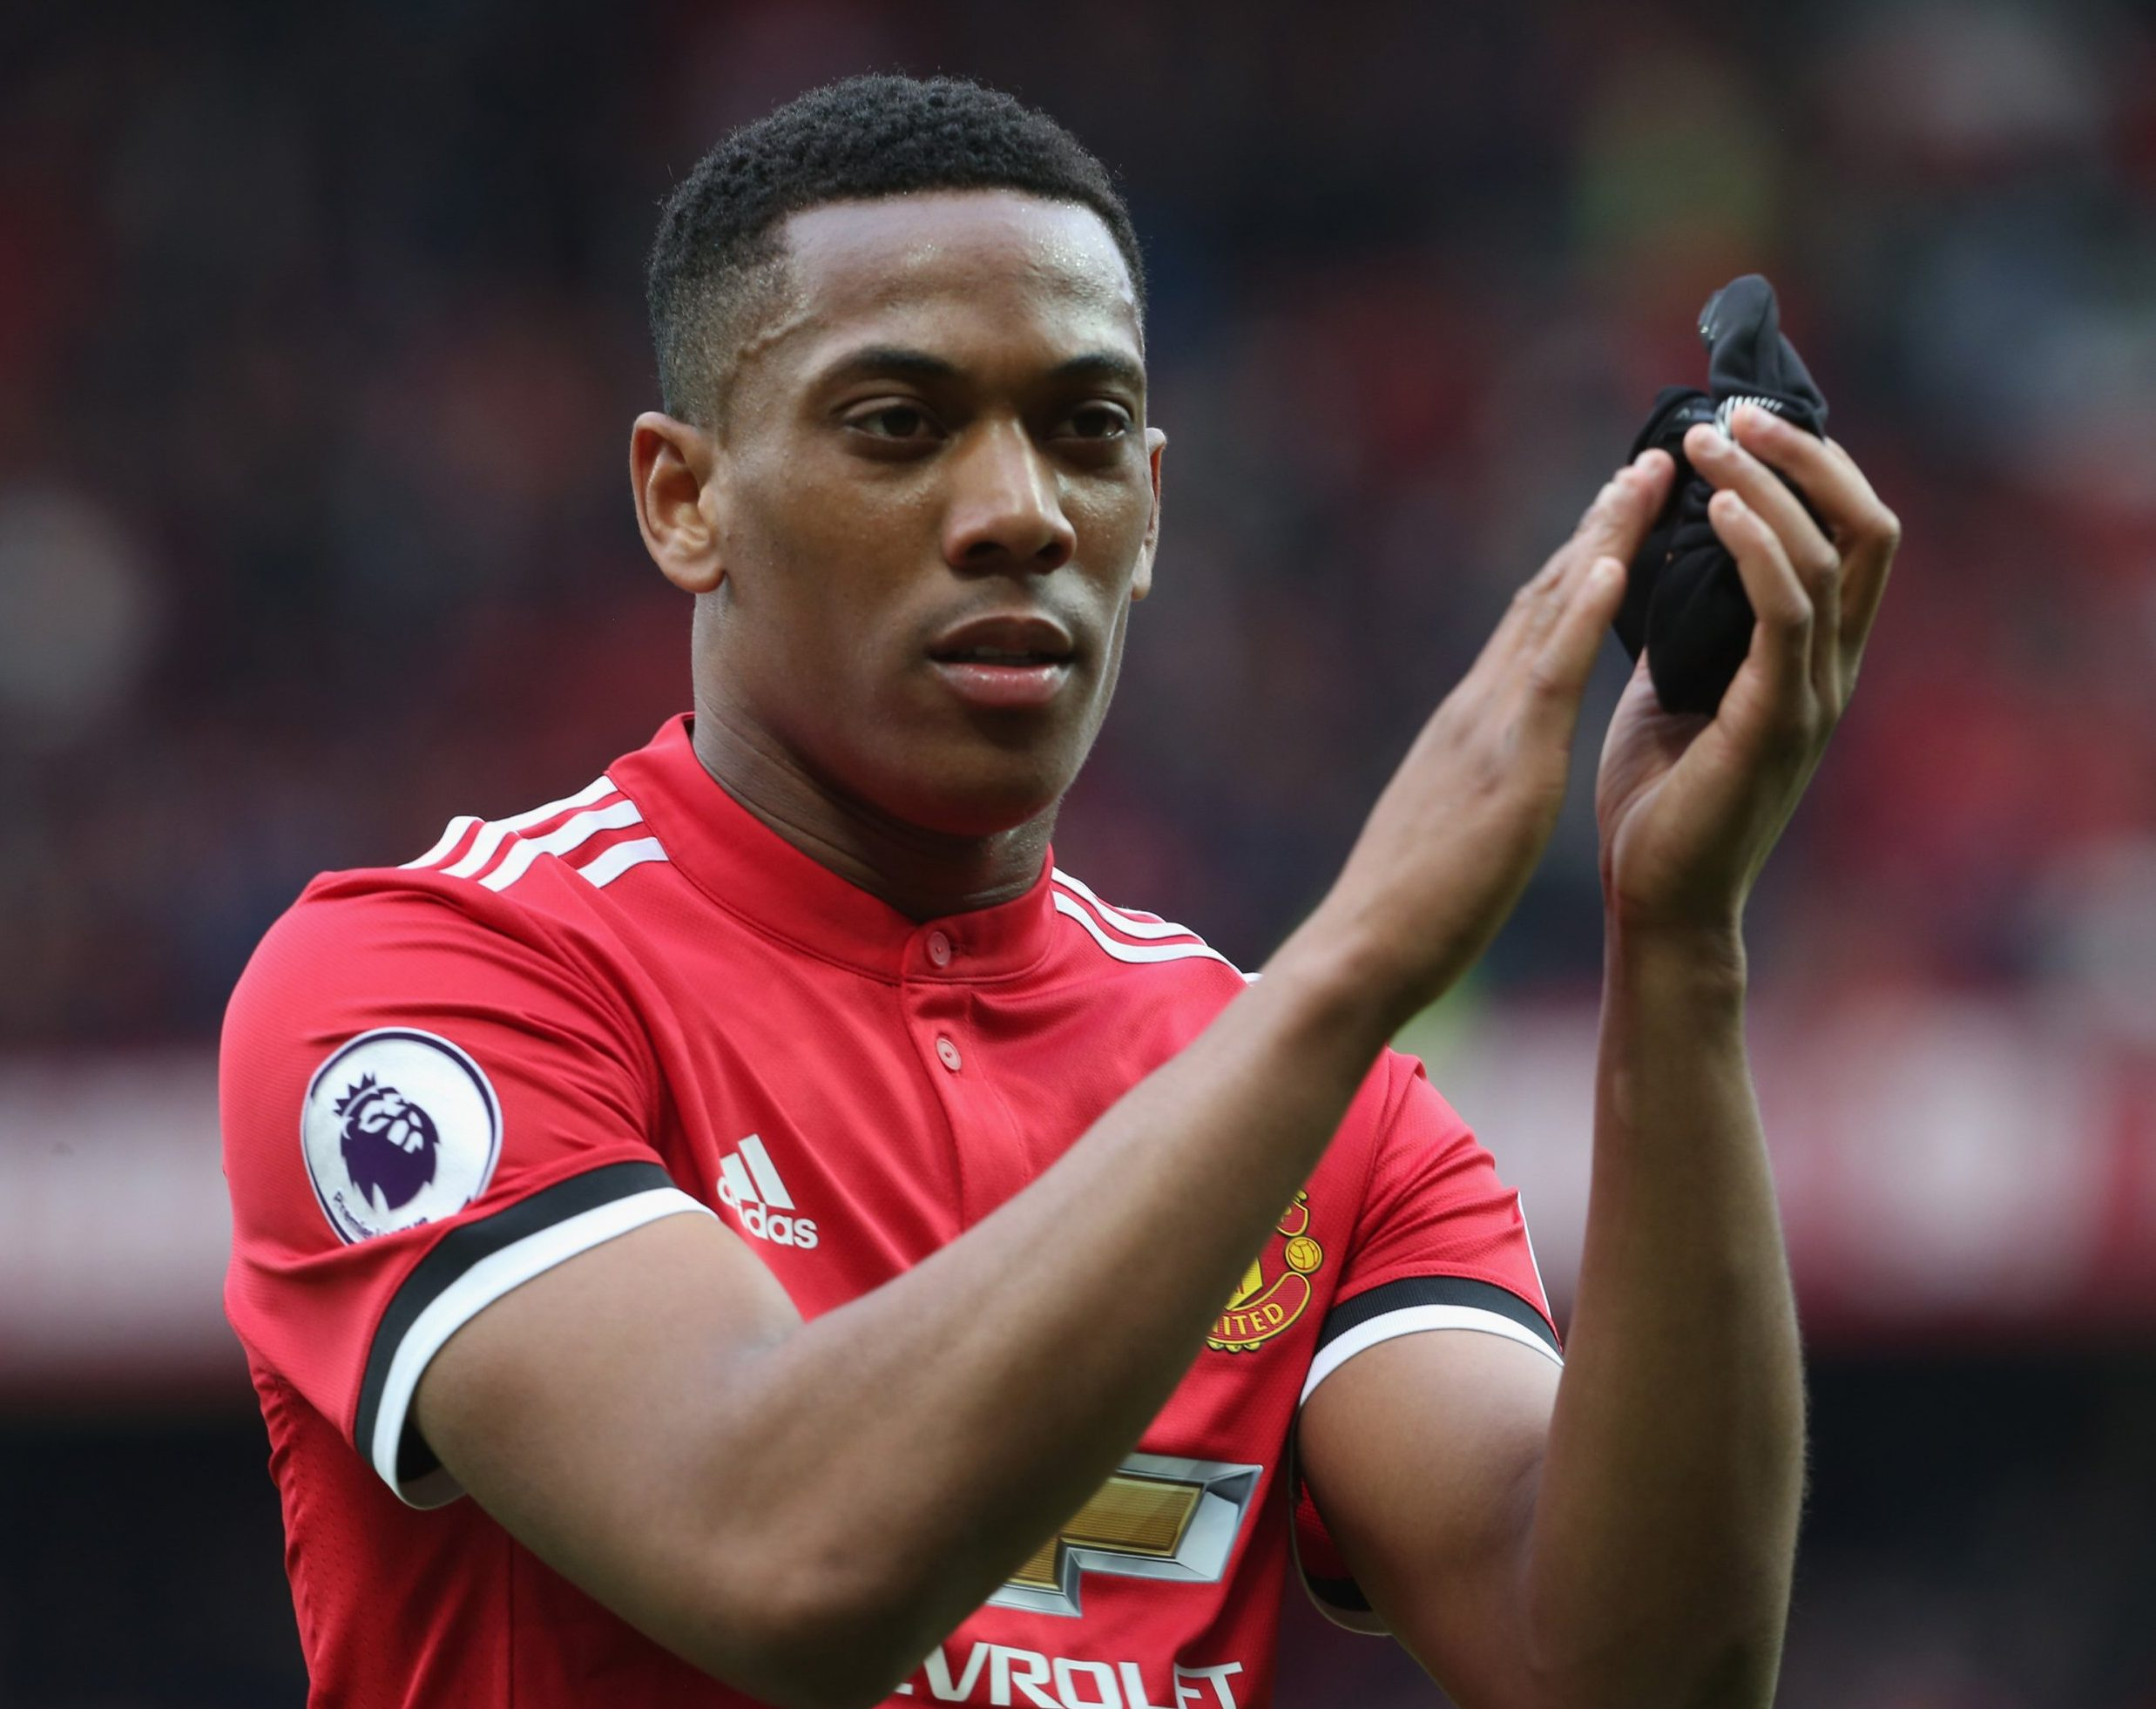 MANCHESTER, ENGLAND - APRIL 29: Anthony Martial of Manchester United walks off after the Premier League match between Manchester United and Arsenal at Old Trafford on April 29, 2018 in Manchester, England. (Photo by Tom Purslow/Man Utd via Getty Images)